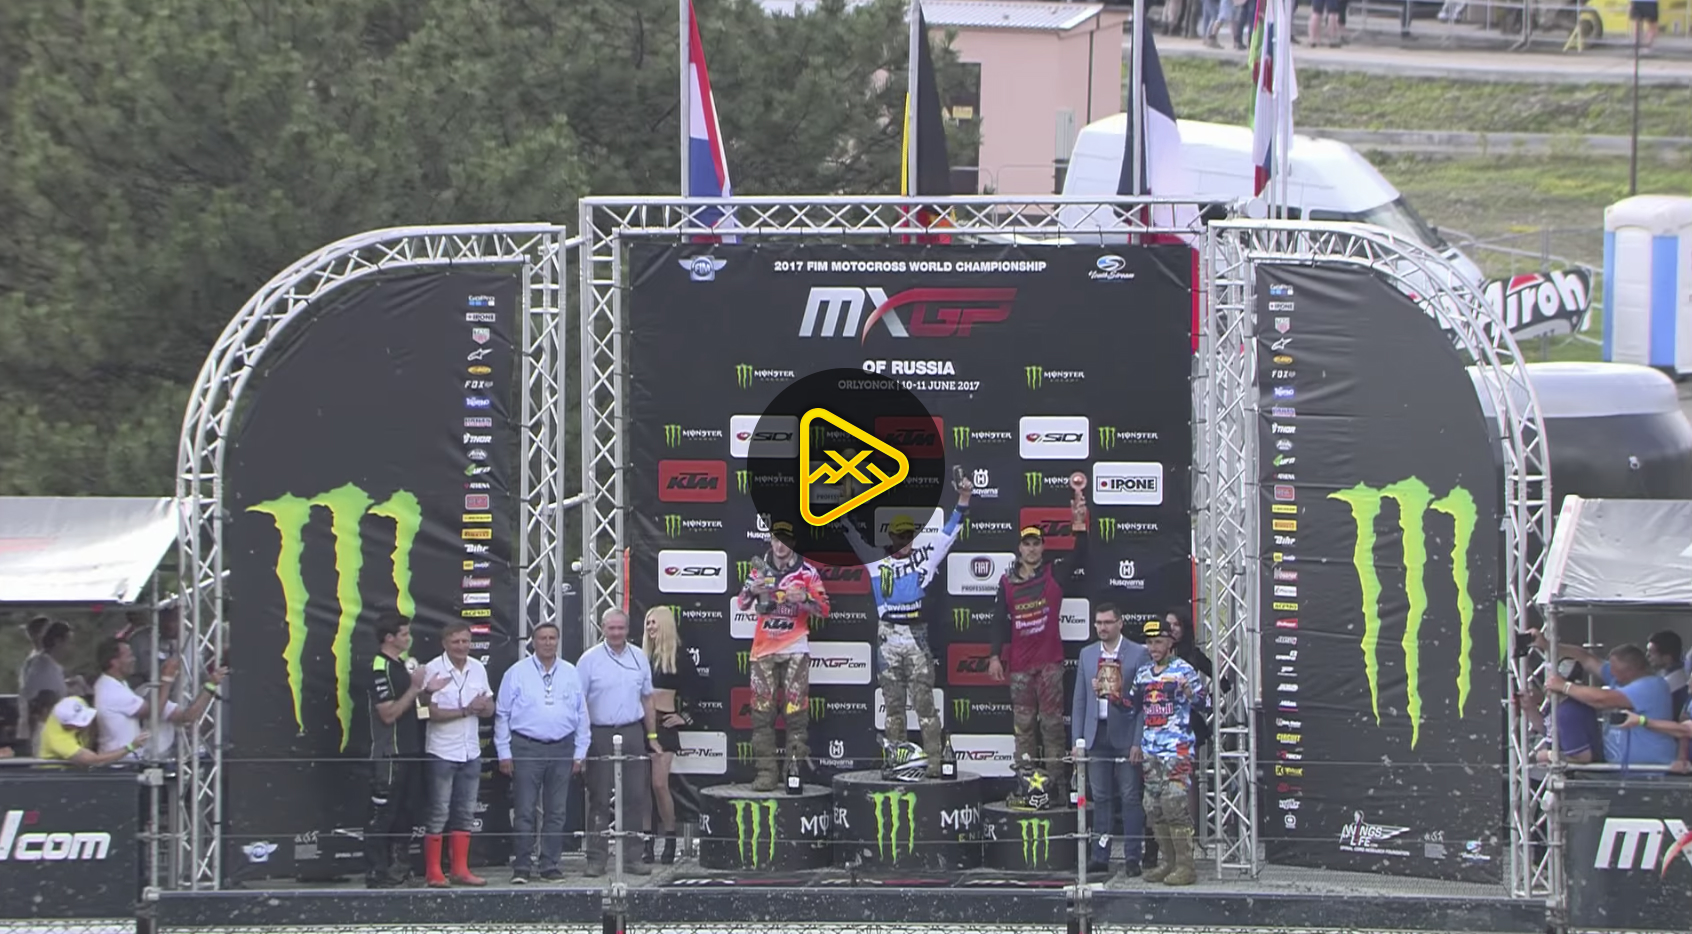 2017 MXGP of Russia Race Highlights